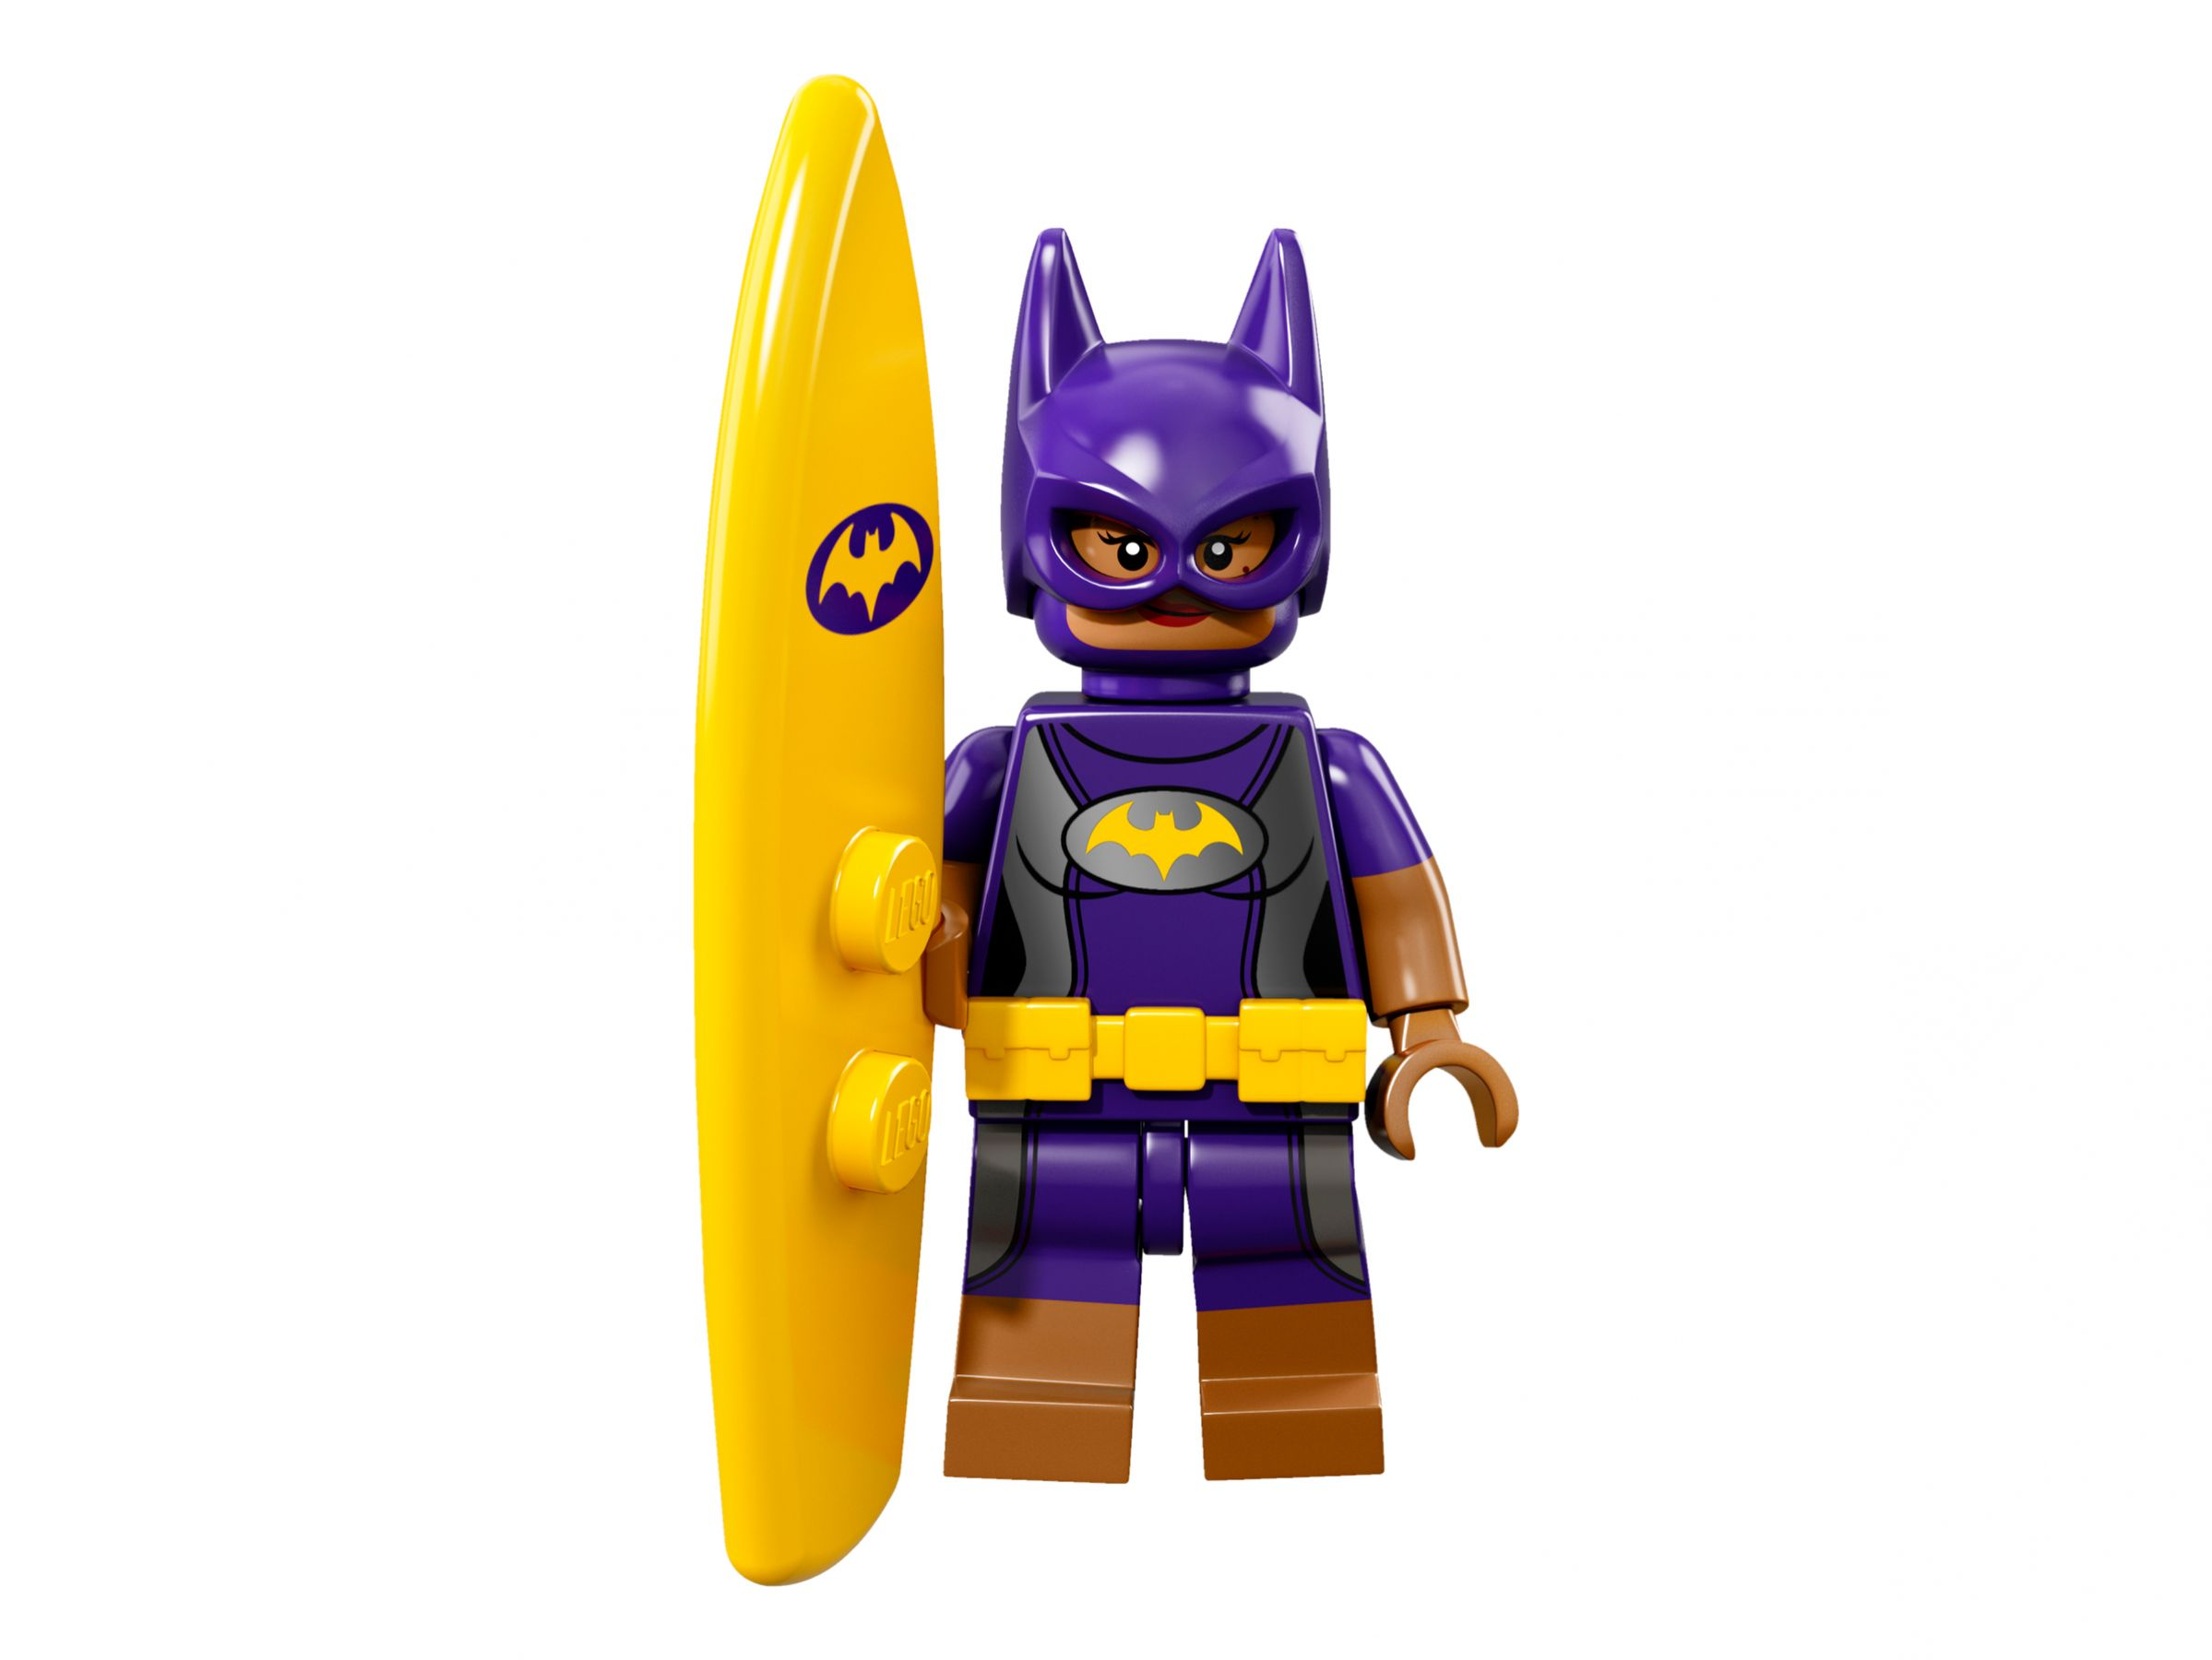 LEGO Collectable Minifigures 71020 LEGO® Batman Movie Minifiguren Serie 2 LEGO_71020_alt17.jpg